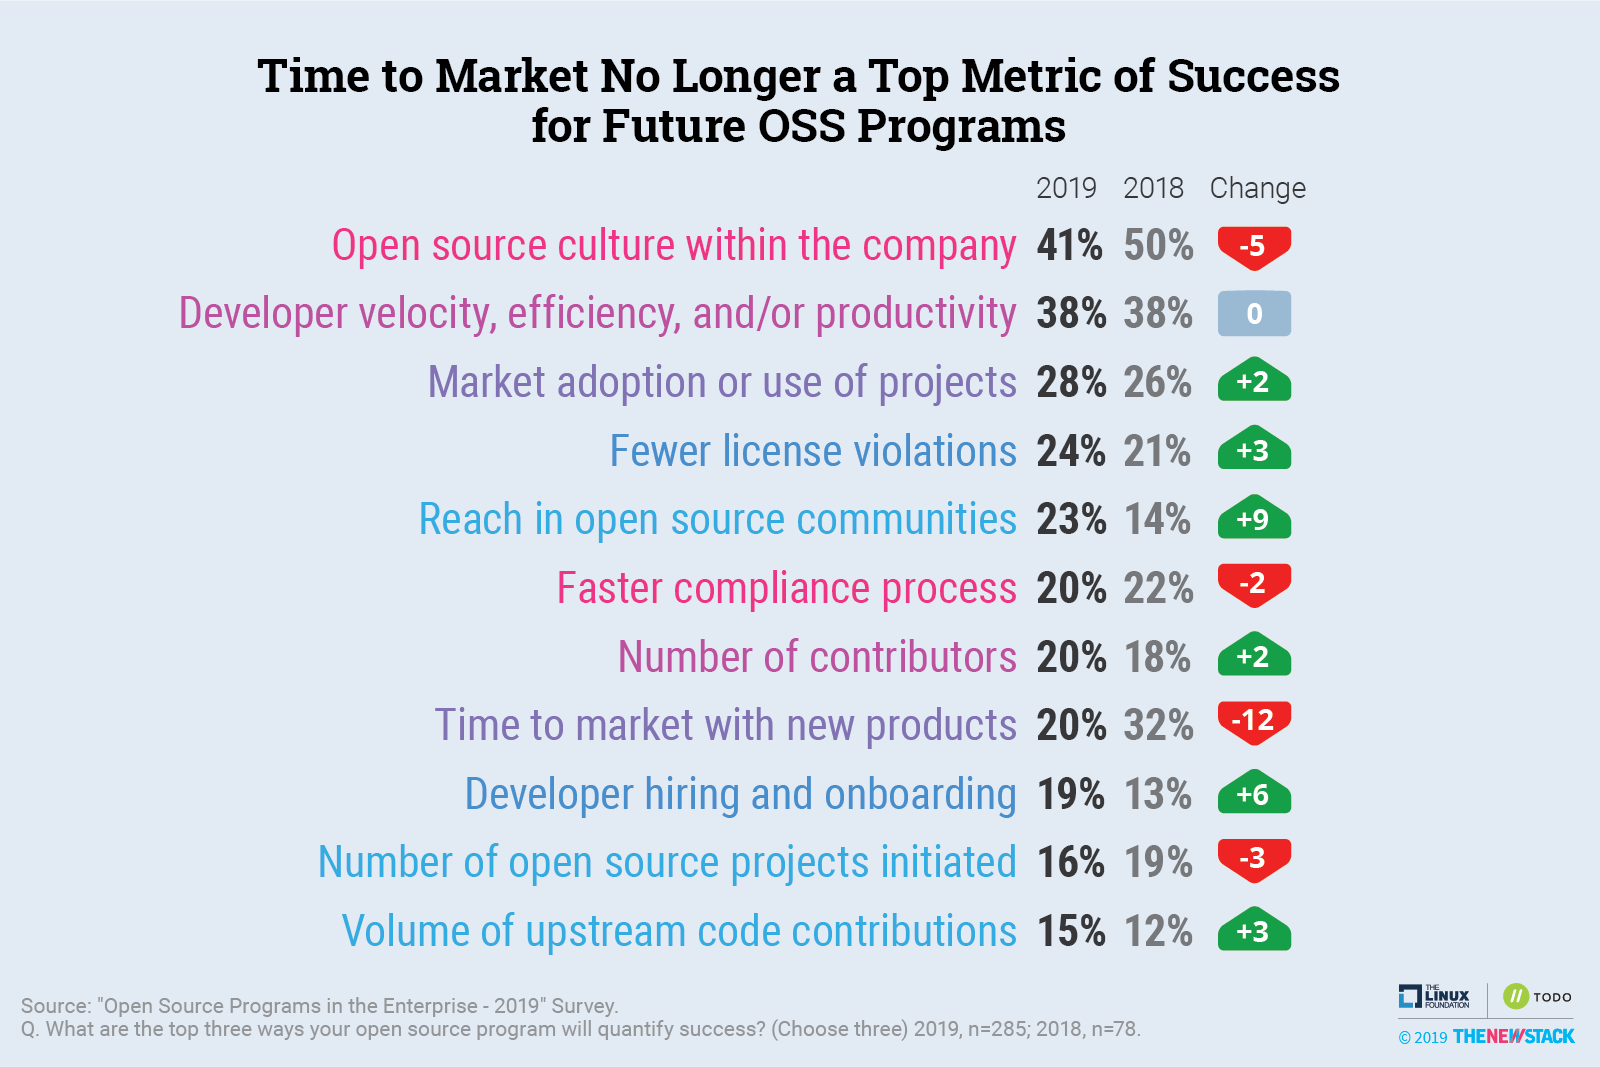 Time to Market No Longer a Top Metric of Success for Future OSS Programs